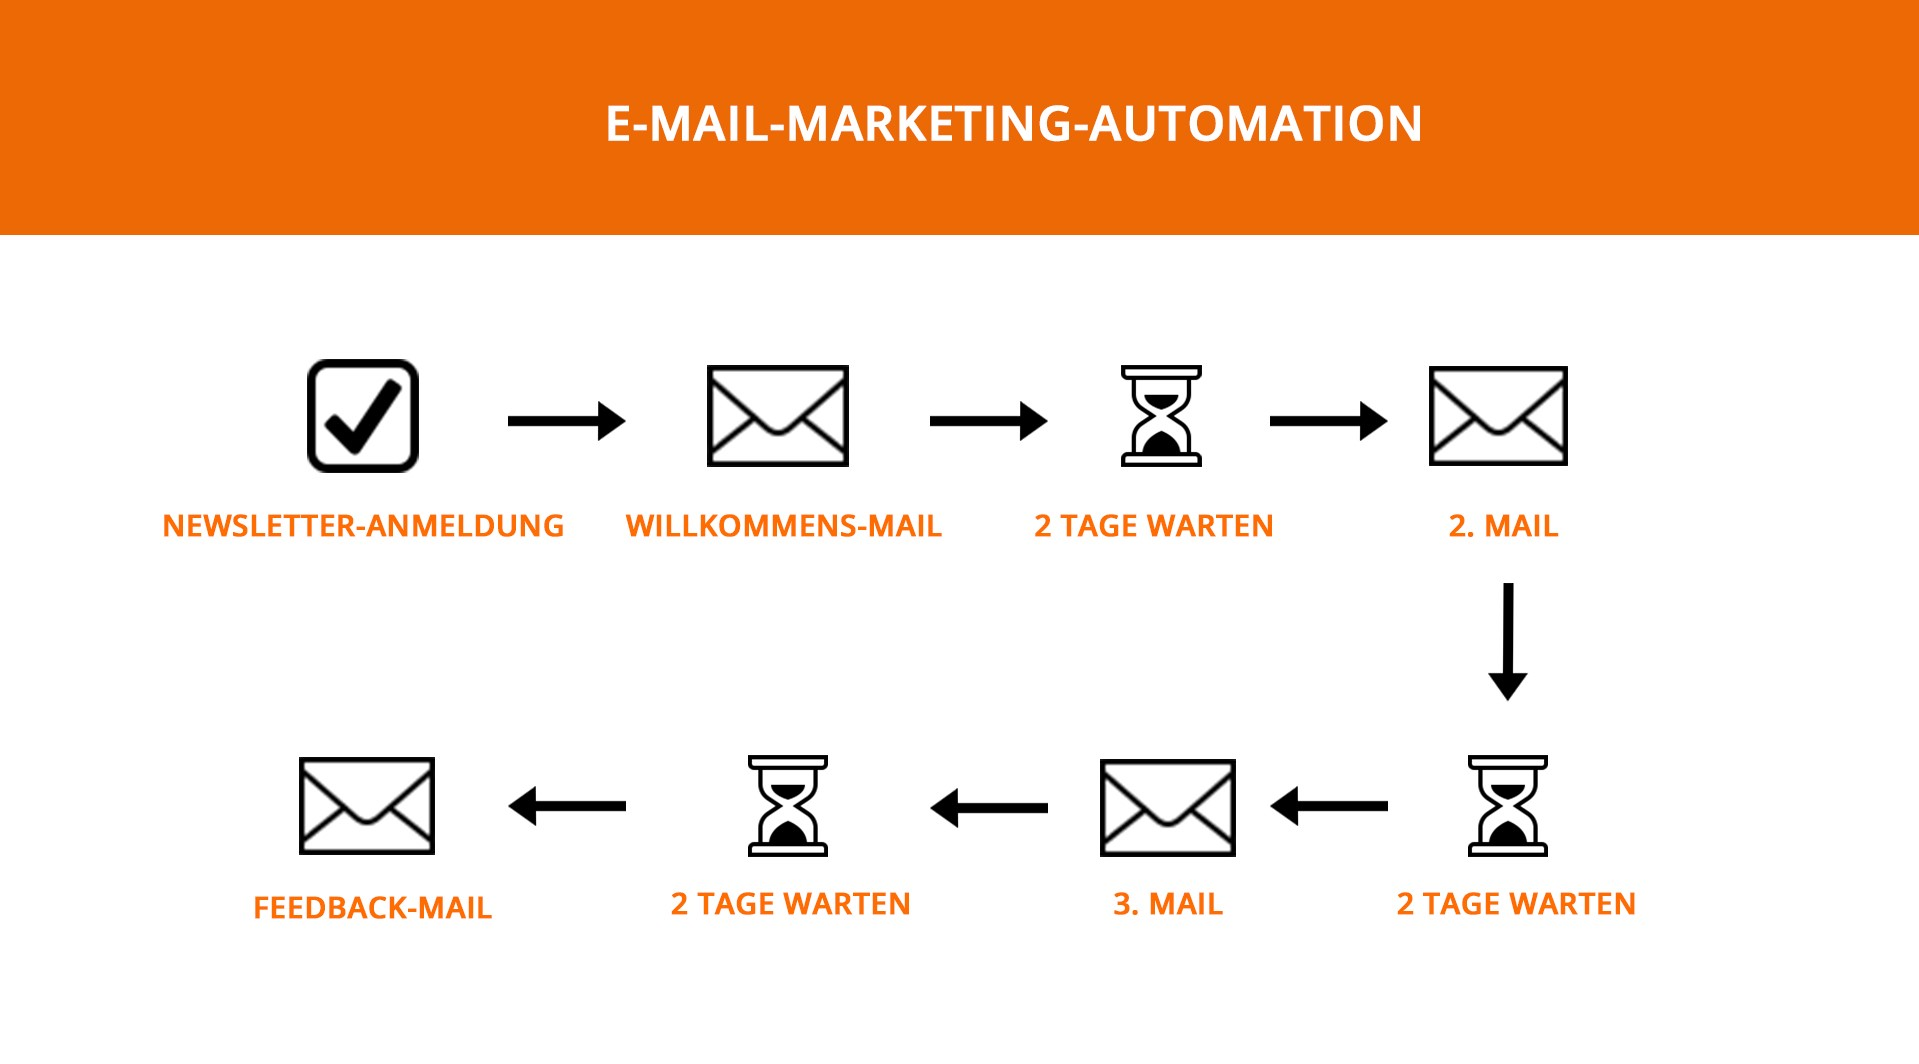 E-Mail-Marketing-Automation Nr.6